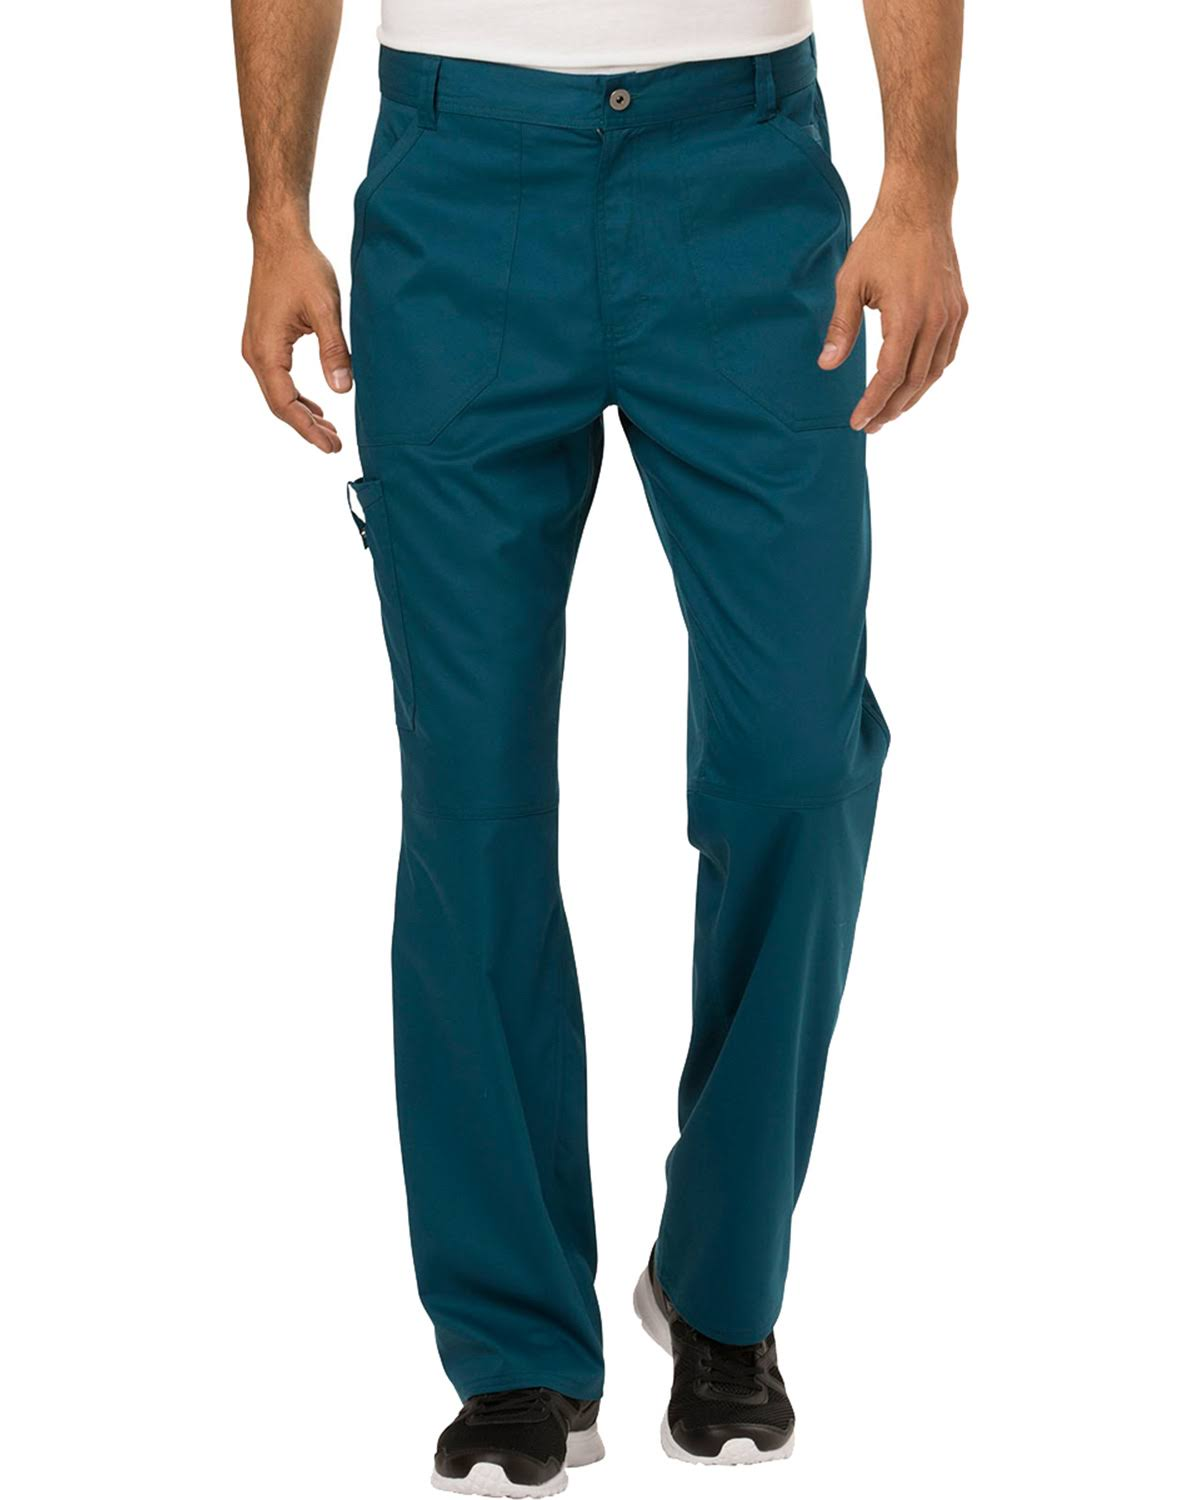 Cherokee Workwear Revolution Men's Fly Front Pant - Caribbean Blue (L)